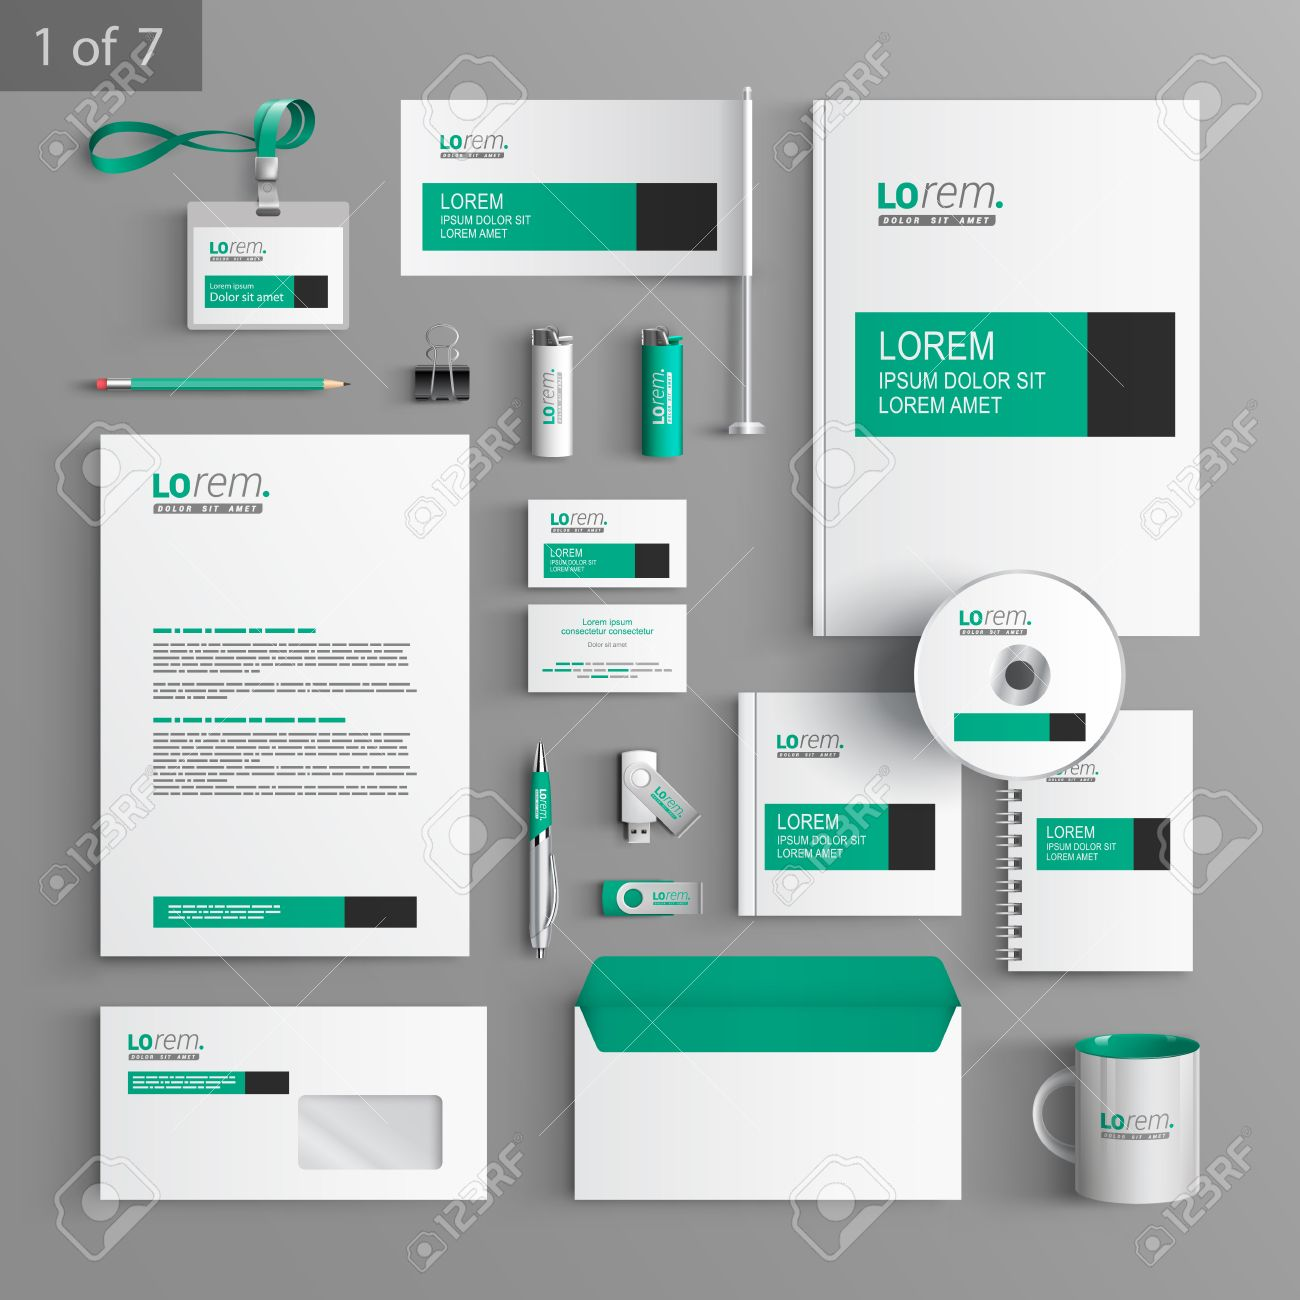 Corporate Graphic Design White Classic Corporate Identity Template Design With Green And